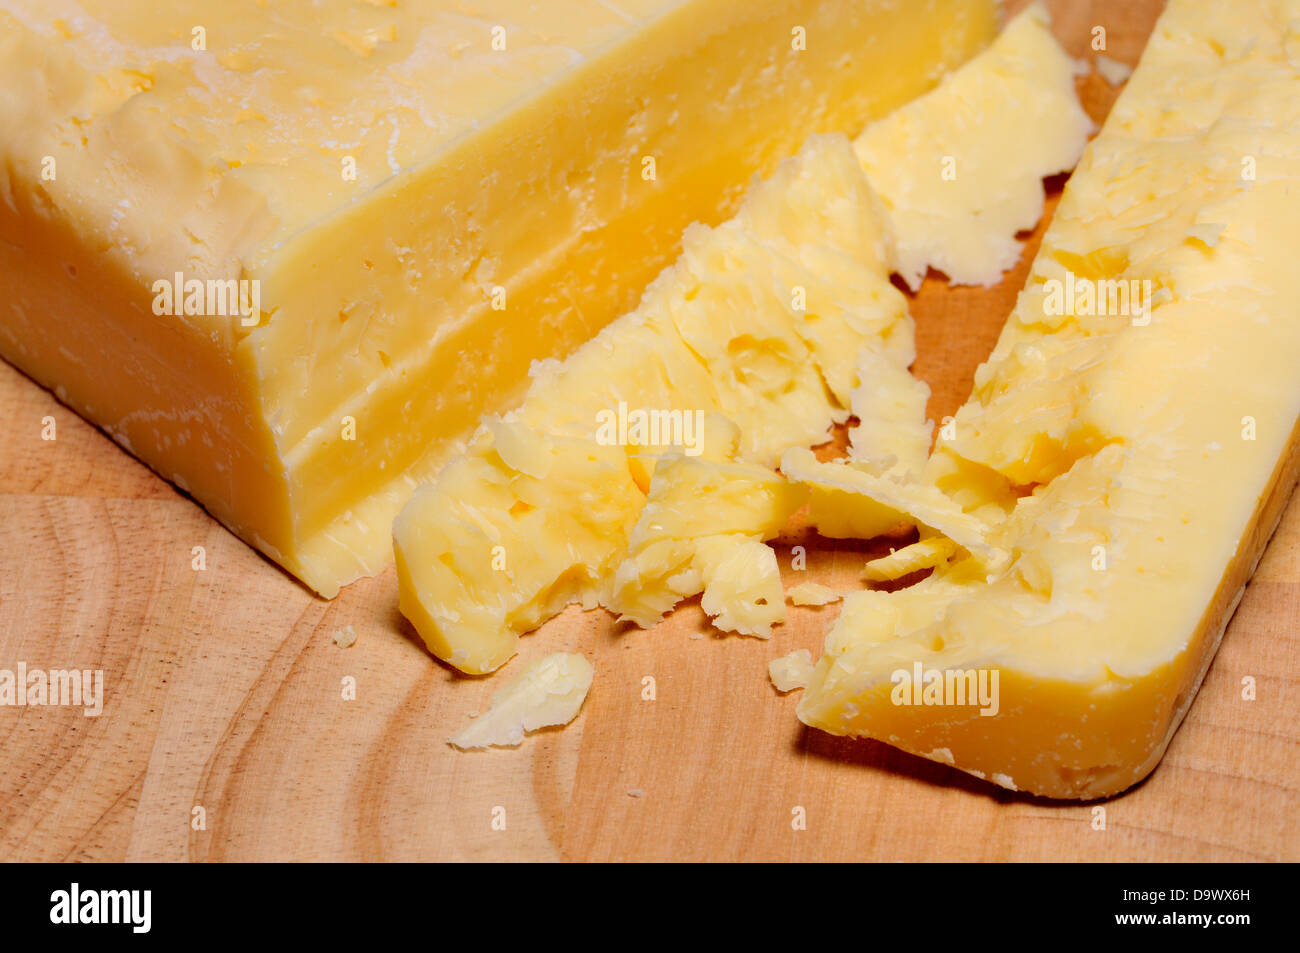 Cheddar cheese on a wooden cheeseboard - Stock Image